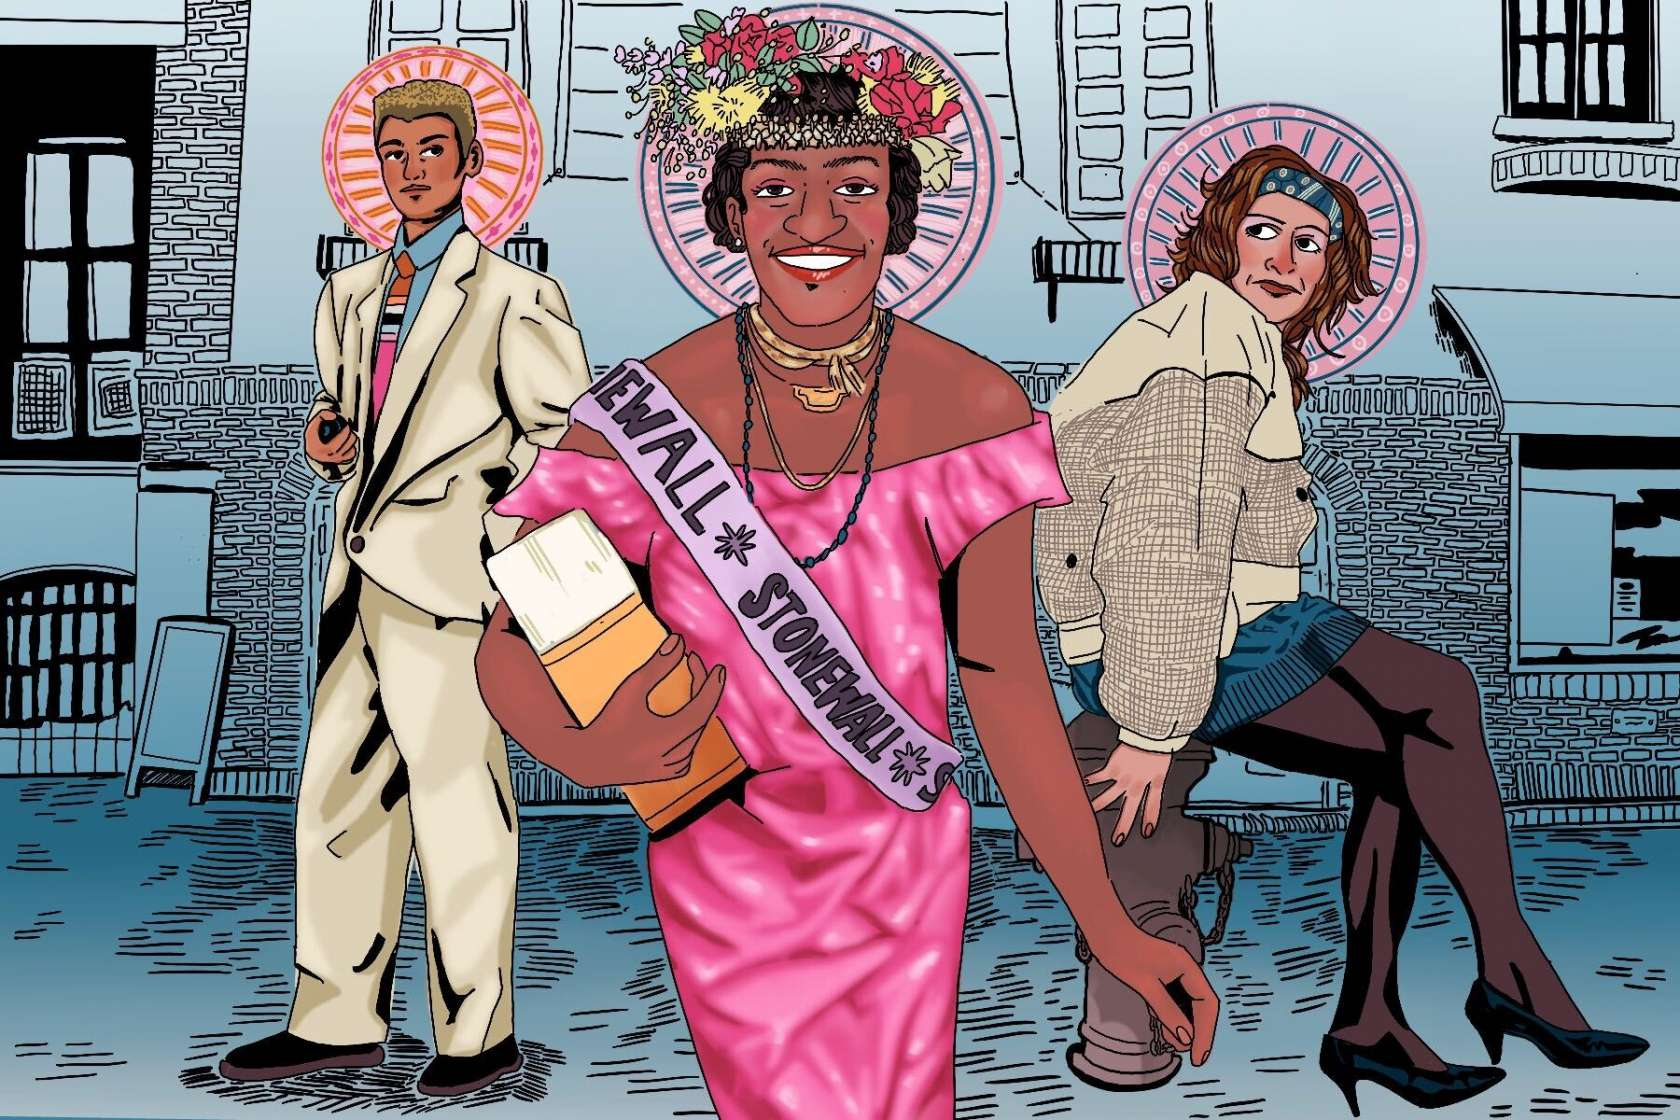 (L to R) Stormé DeLarverie, Marsha P. Johnson, and Sylvia Rivera